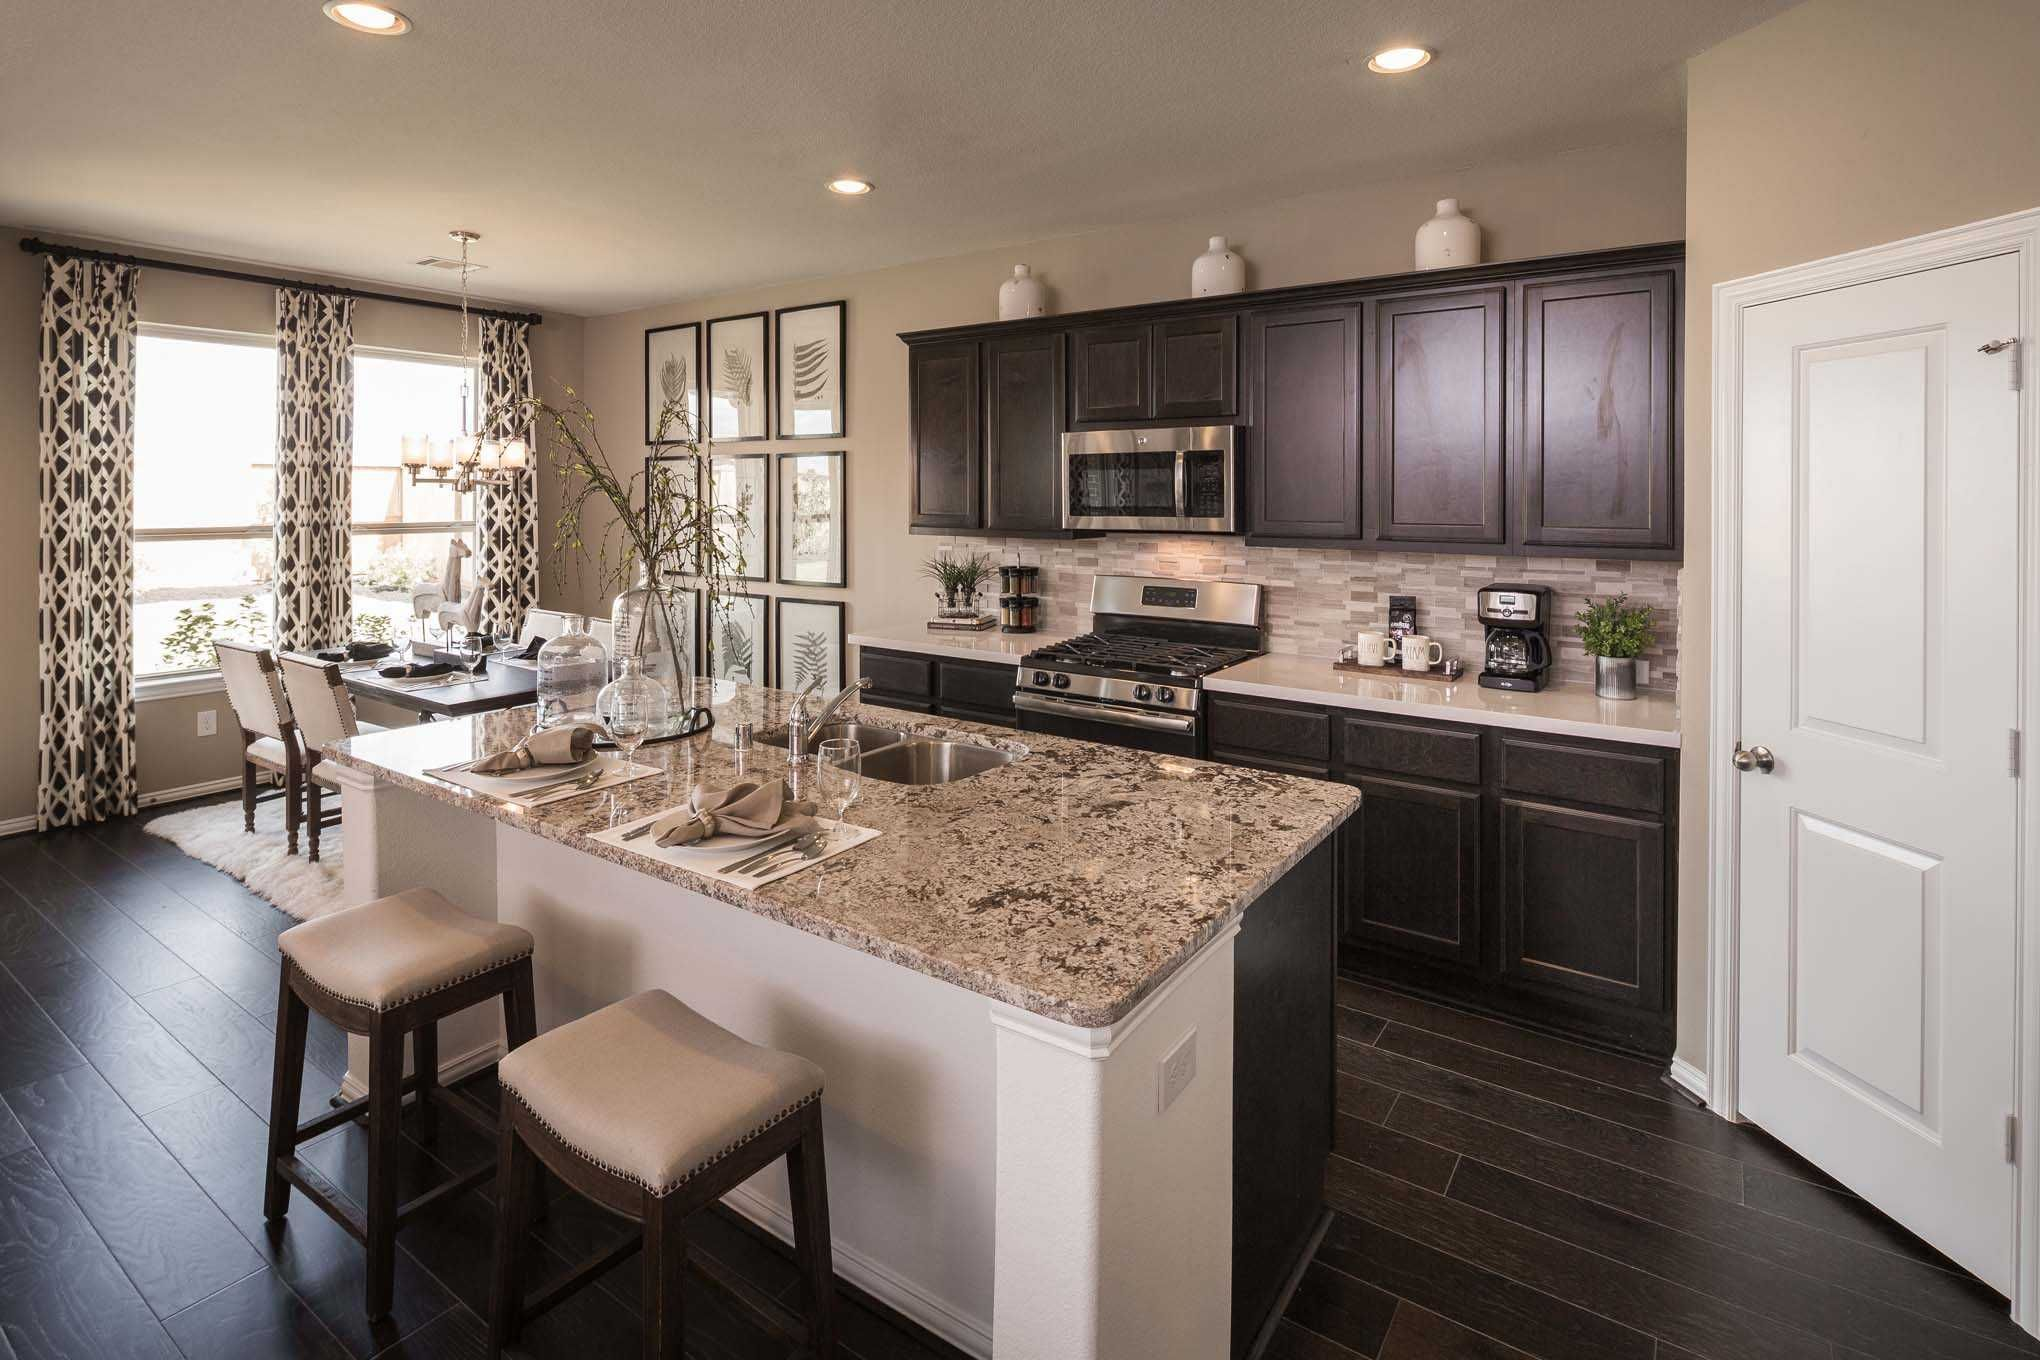 Kitchen Design Houston Impressive Highland Homes Richmond Model Home In Houston Texas Jordan Ranch Decorating Design